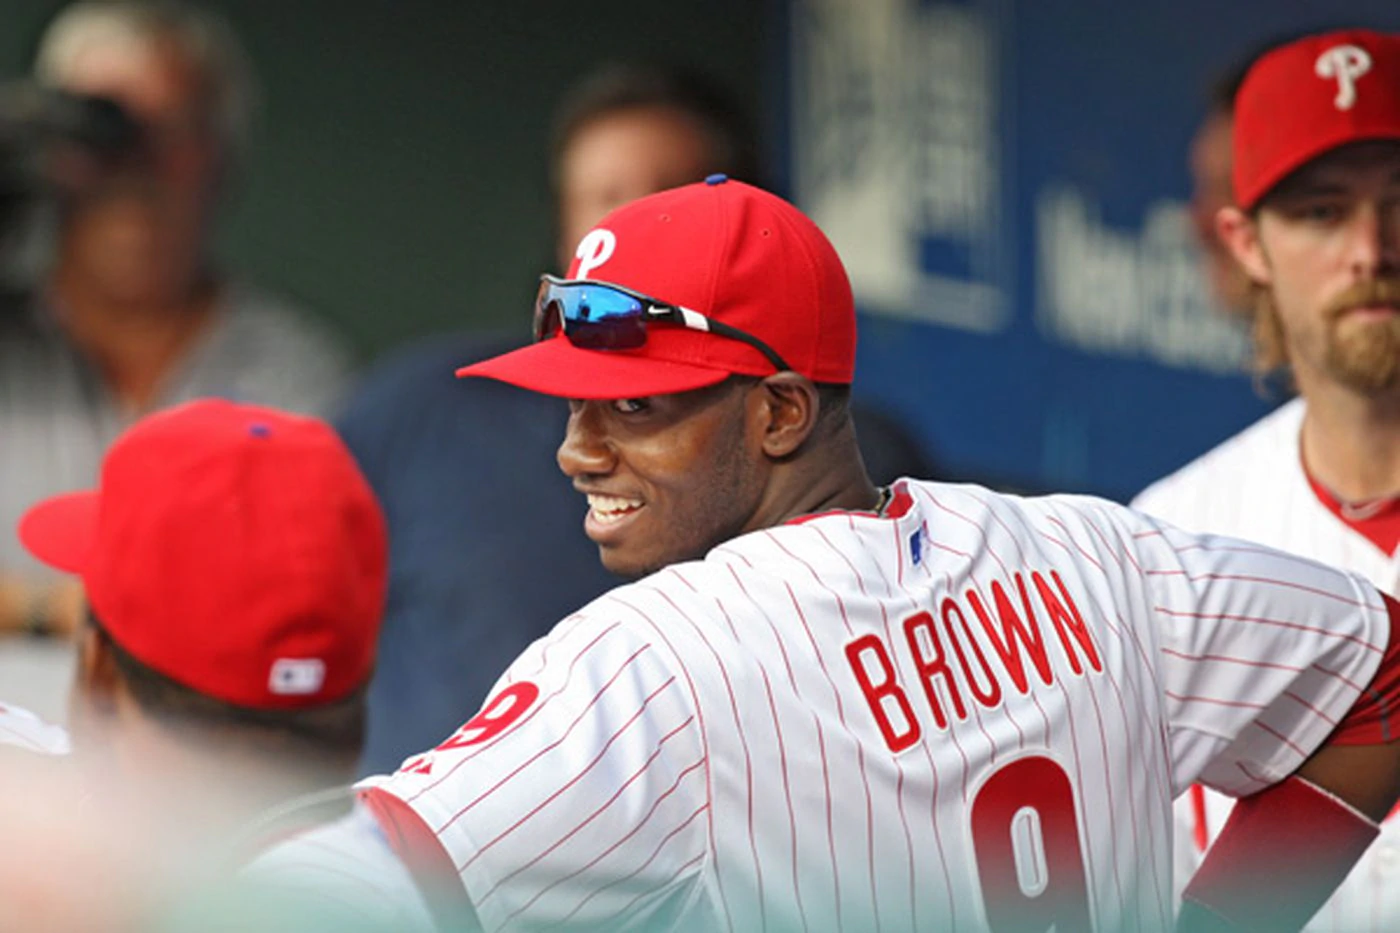 Former Phillies Outfielder Finds New Career at East Norriton's Athletes Academy